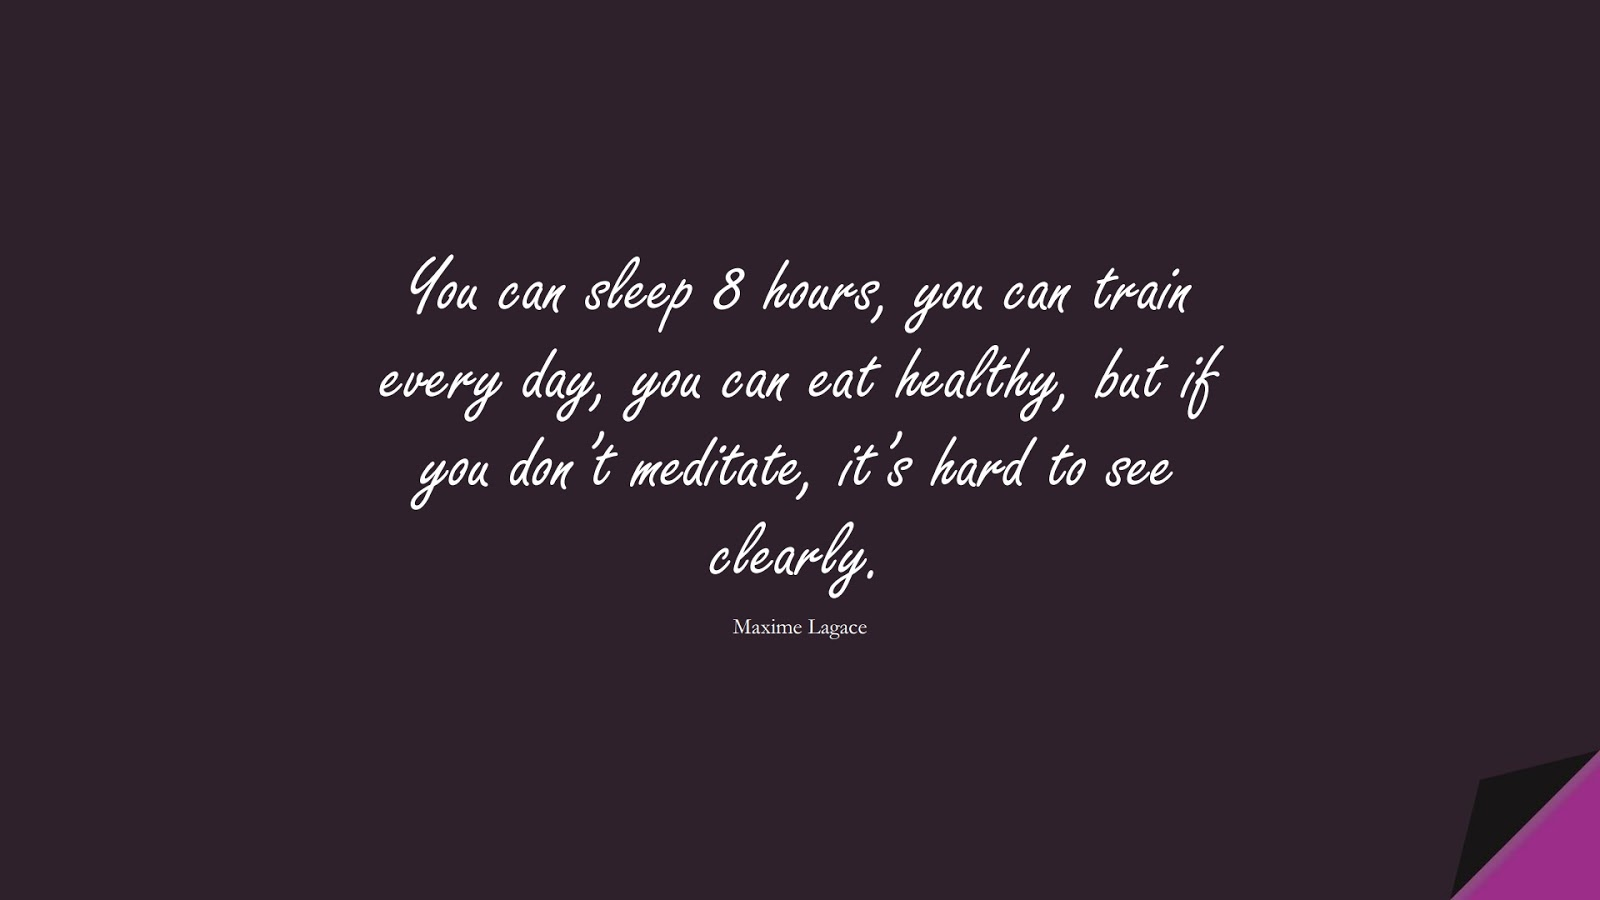 You can sleep 8 hours, you can train every day, you can eat healthy, but if you don't meditate, it's hard to see clearly. (Maxime Lagace);  #StressQuotes